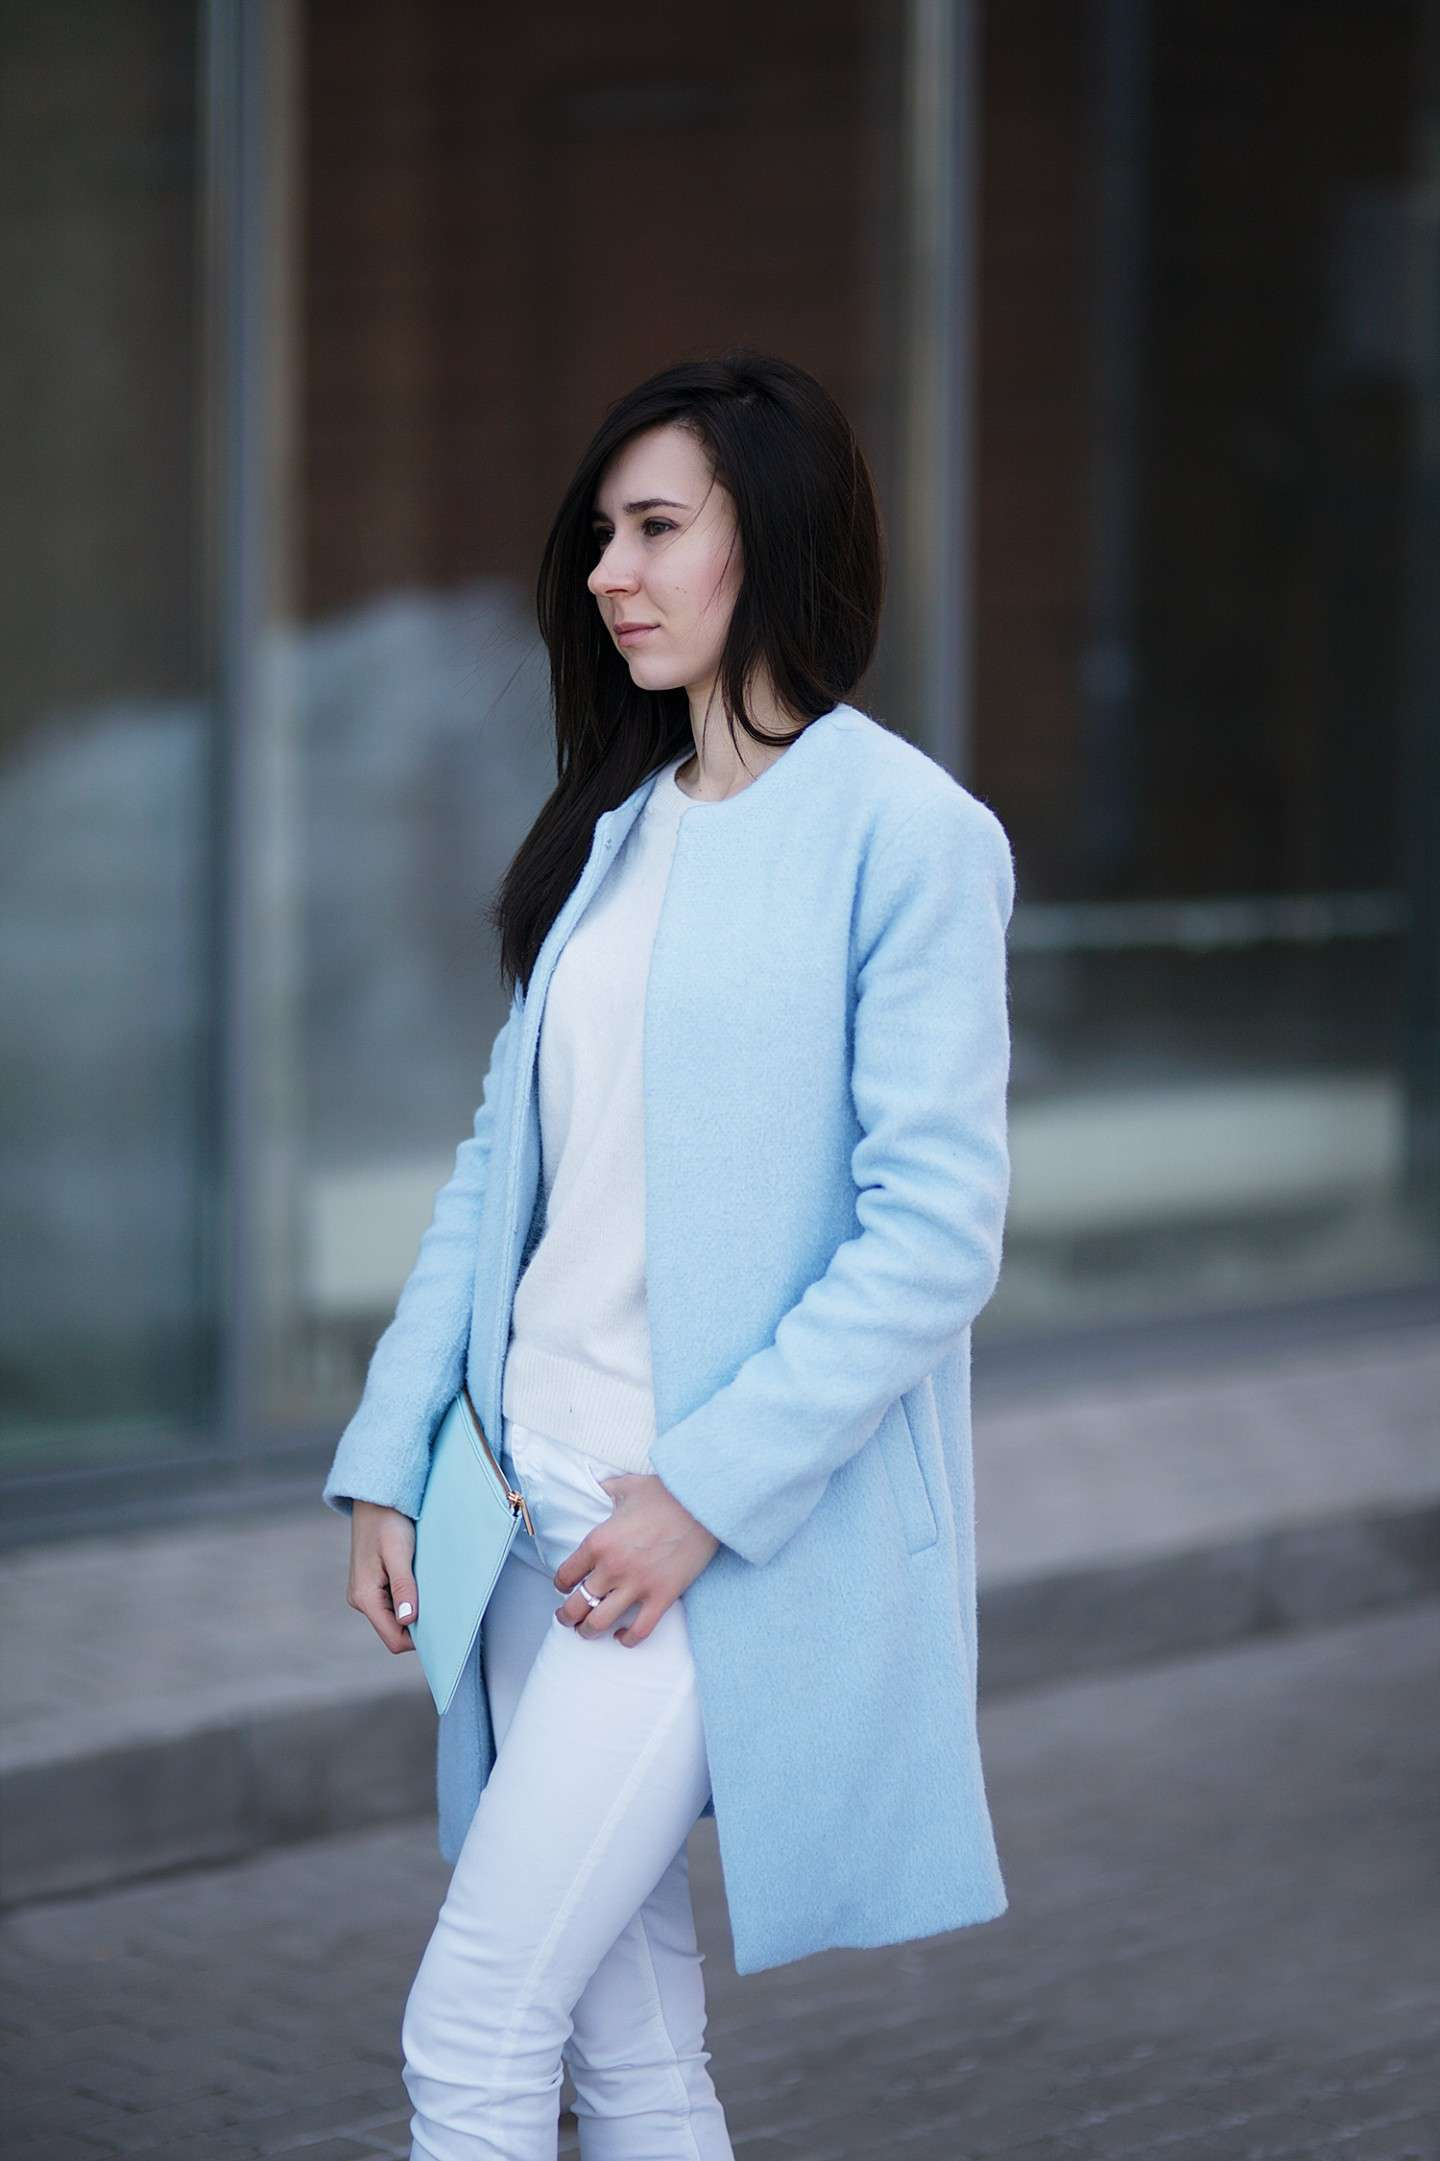 Cappotto Blue Serenity e look total white